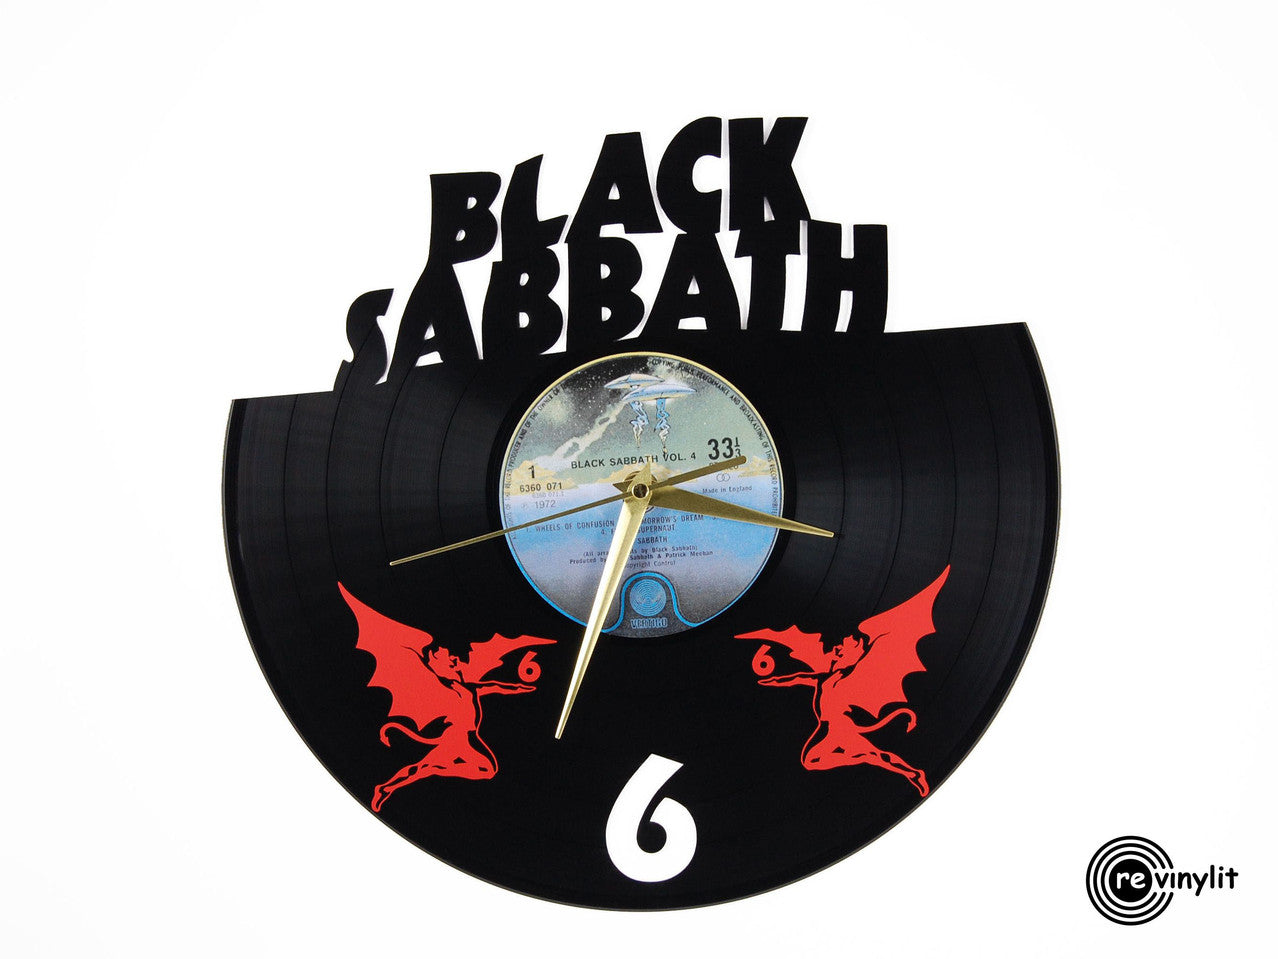 Black Sabbath vinyl record clock